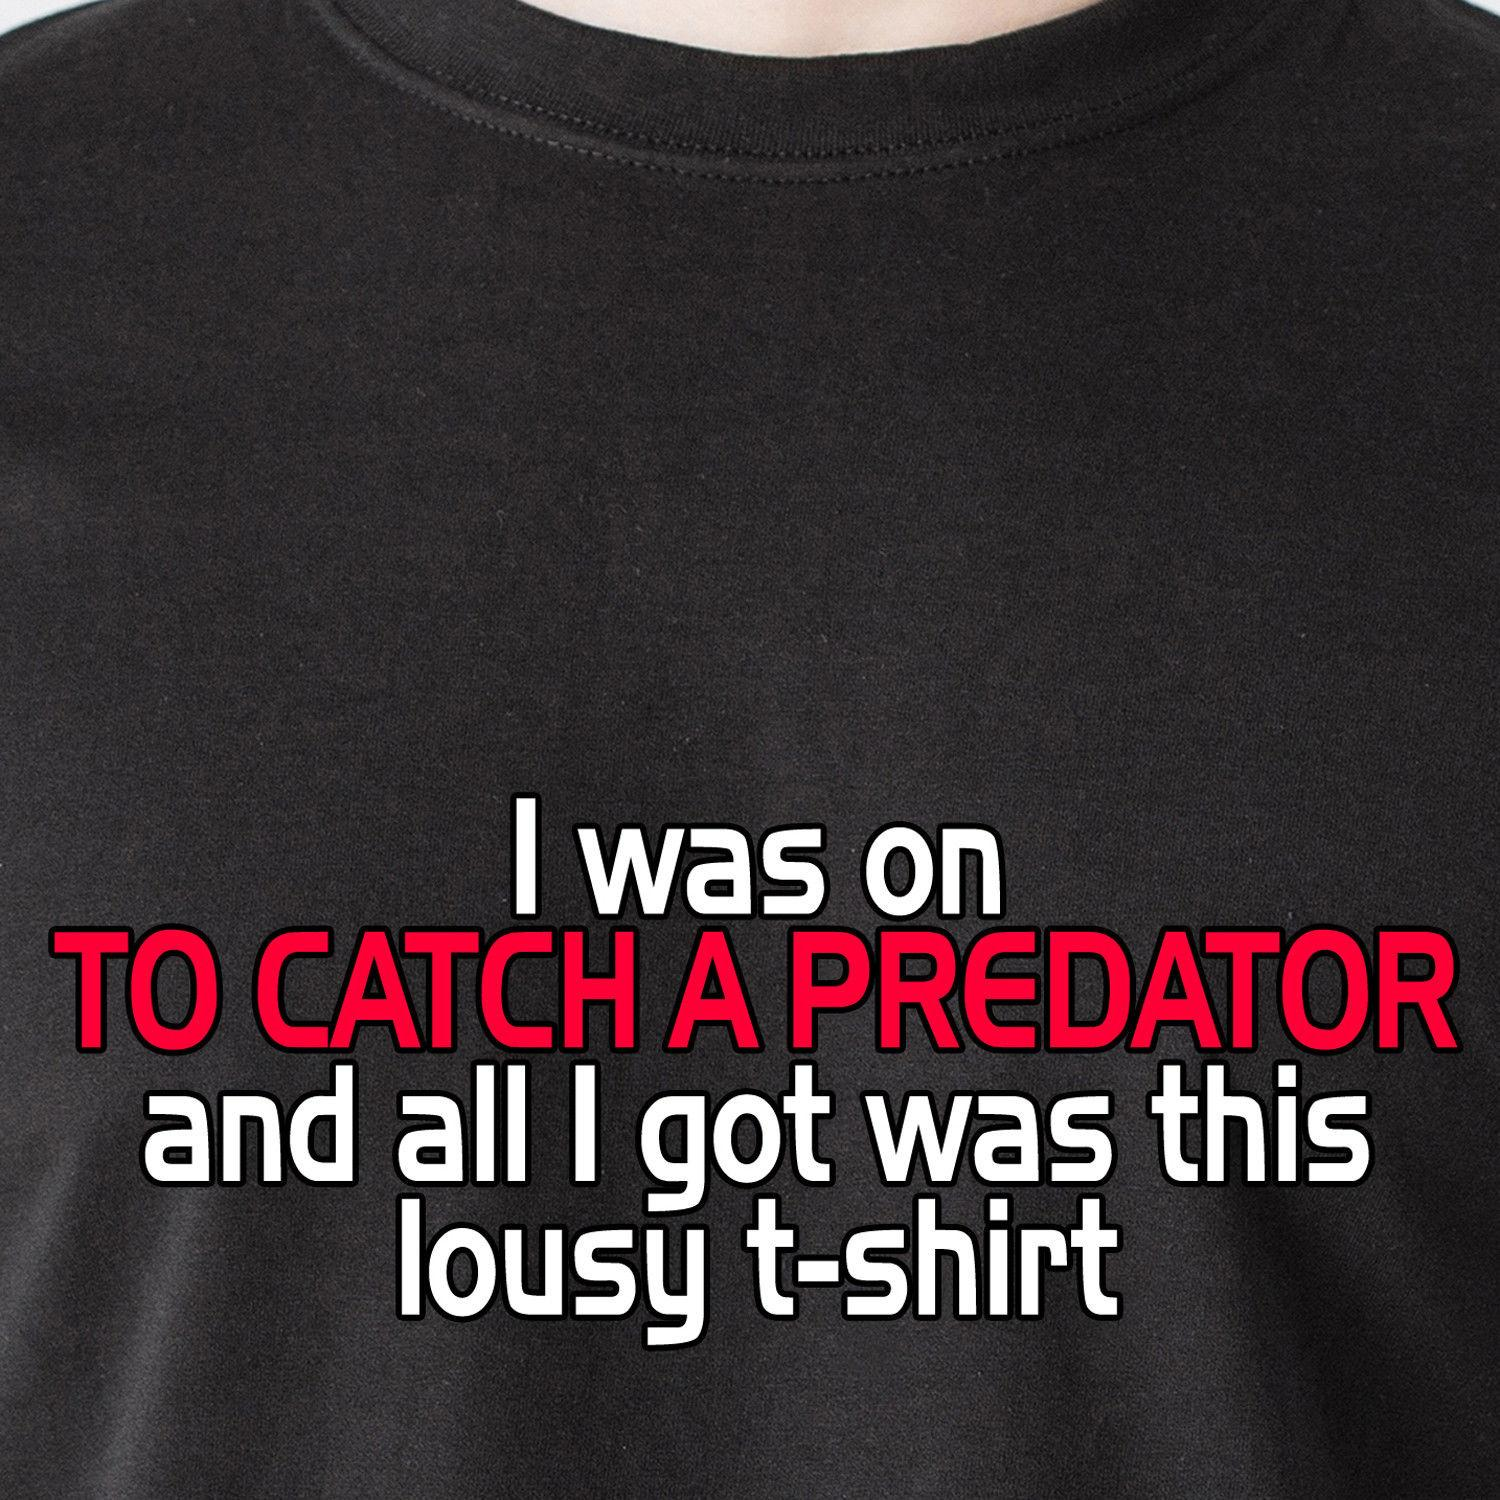 734e8ea2 I Was On TO CATCH A PREDATOR And All I Got Was This Lousy Dateline Funny T  Shirt Jersey Print T Shirt Best Funny T Shirts Really Cool T Shirts From  Sevencup ...